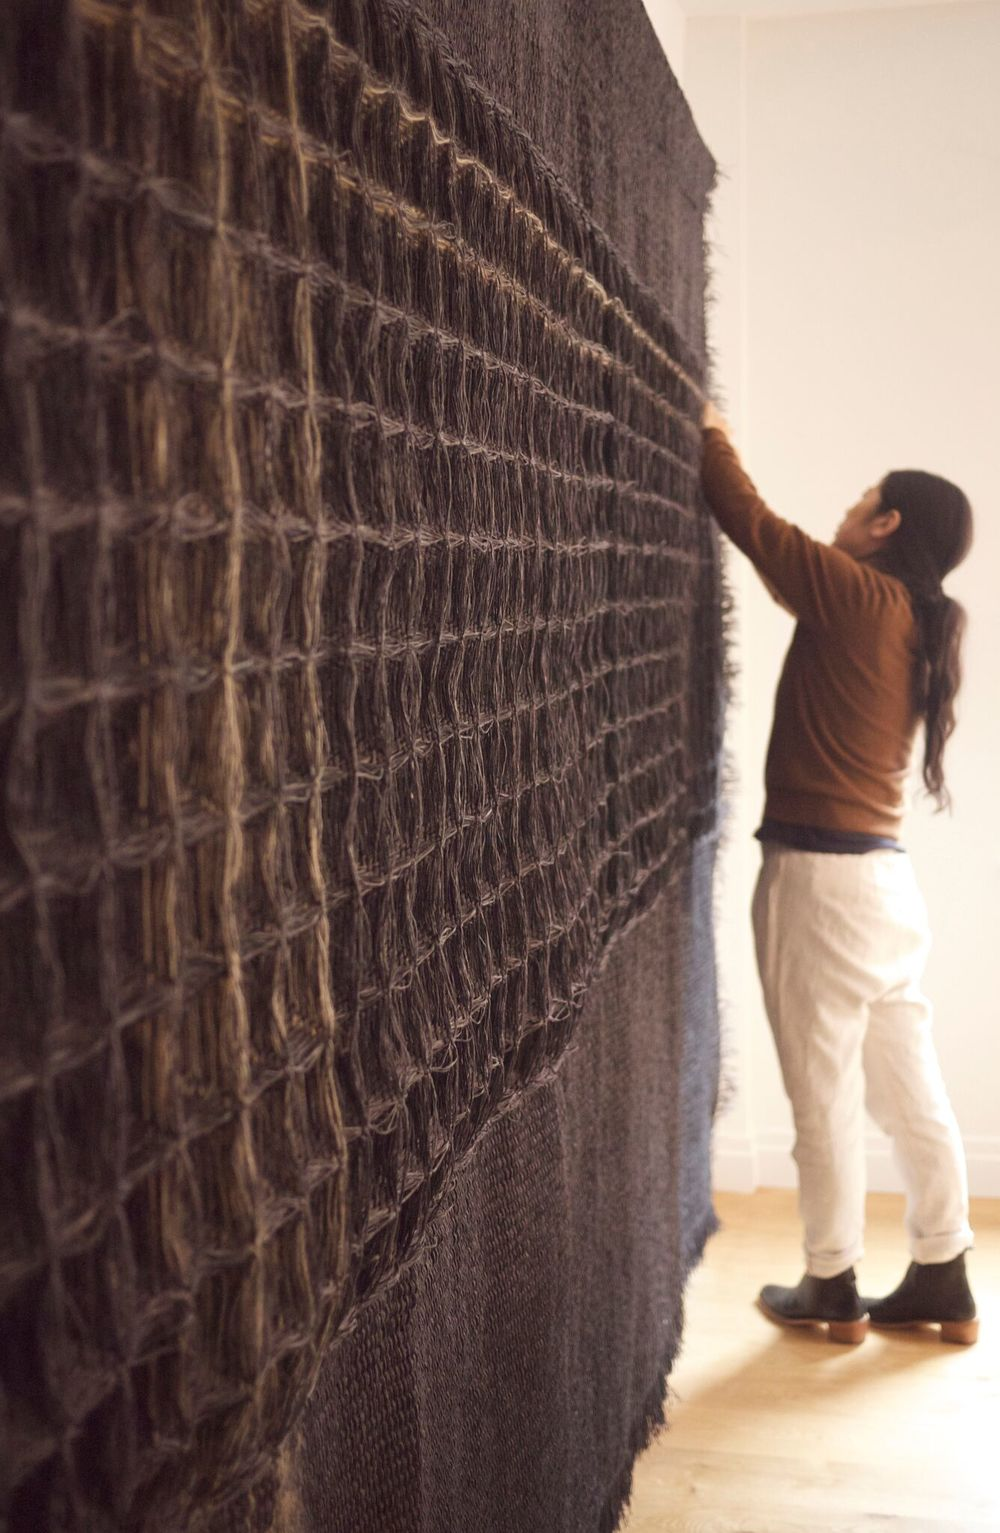 Giant Charcoal, Hiroko Takeda, 2015, NY Studio, 86%22h x 156%22w, mixed natural fibers.jpg